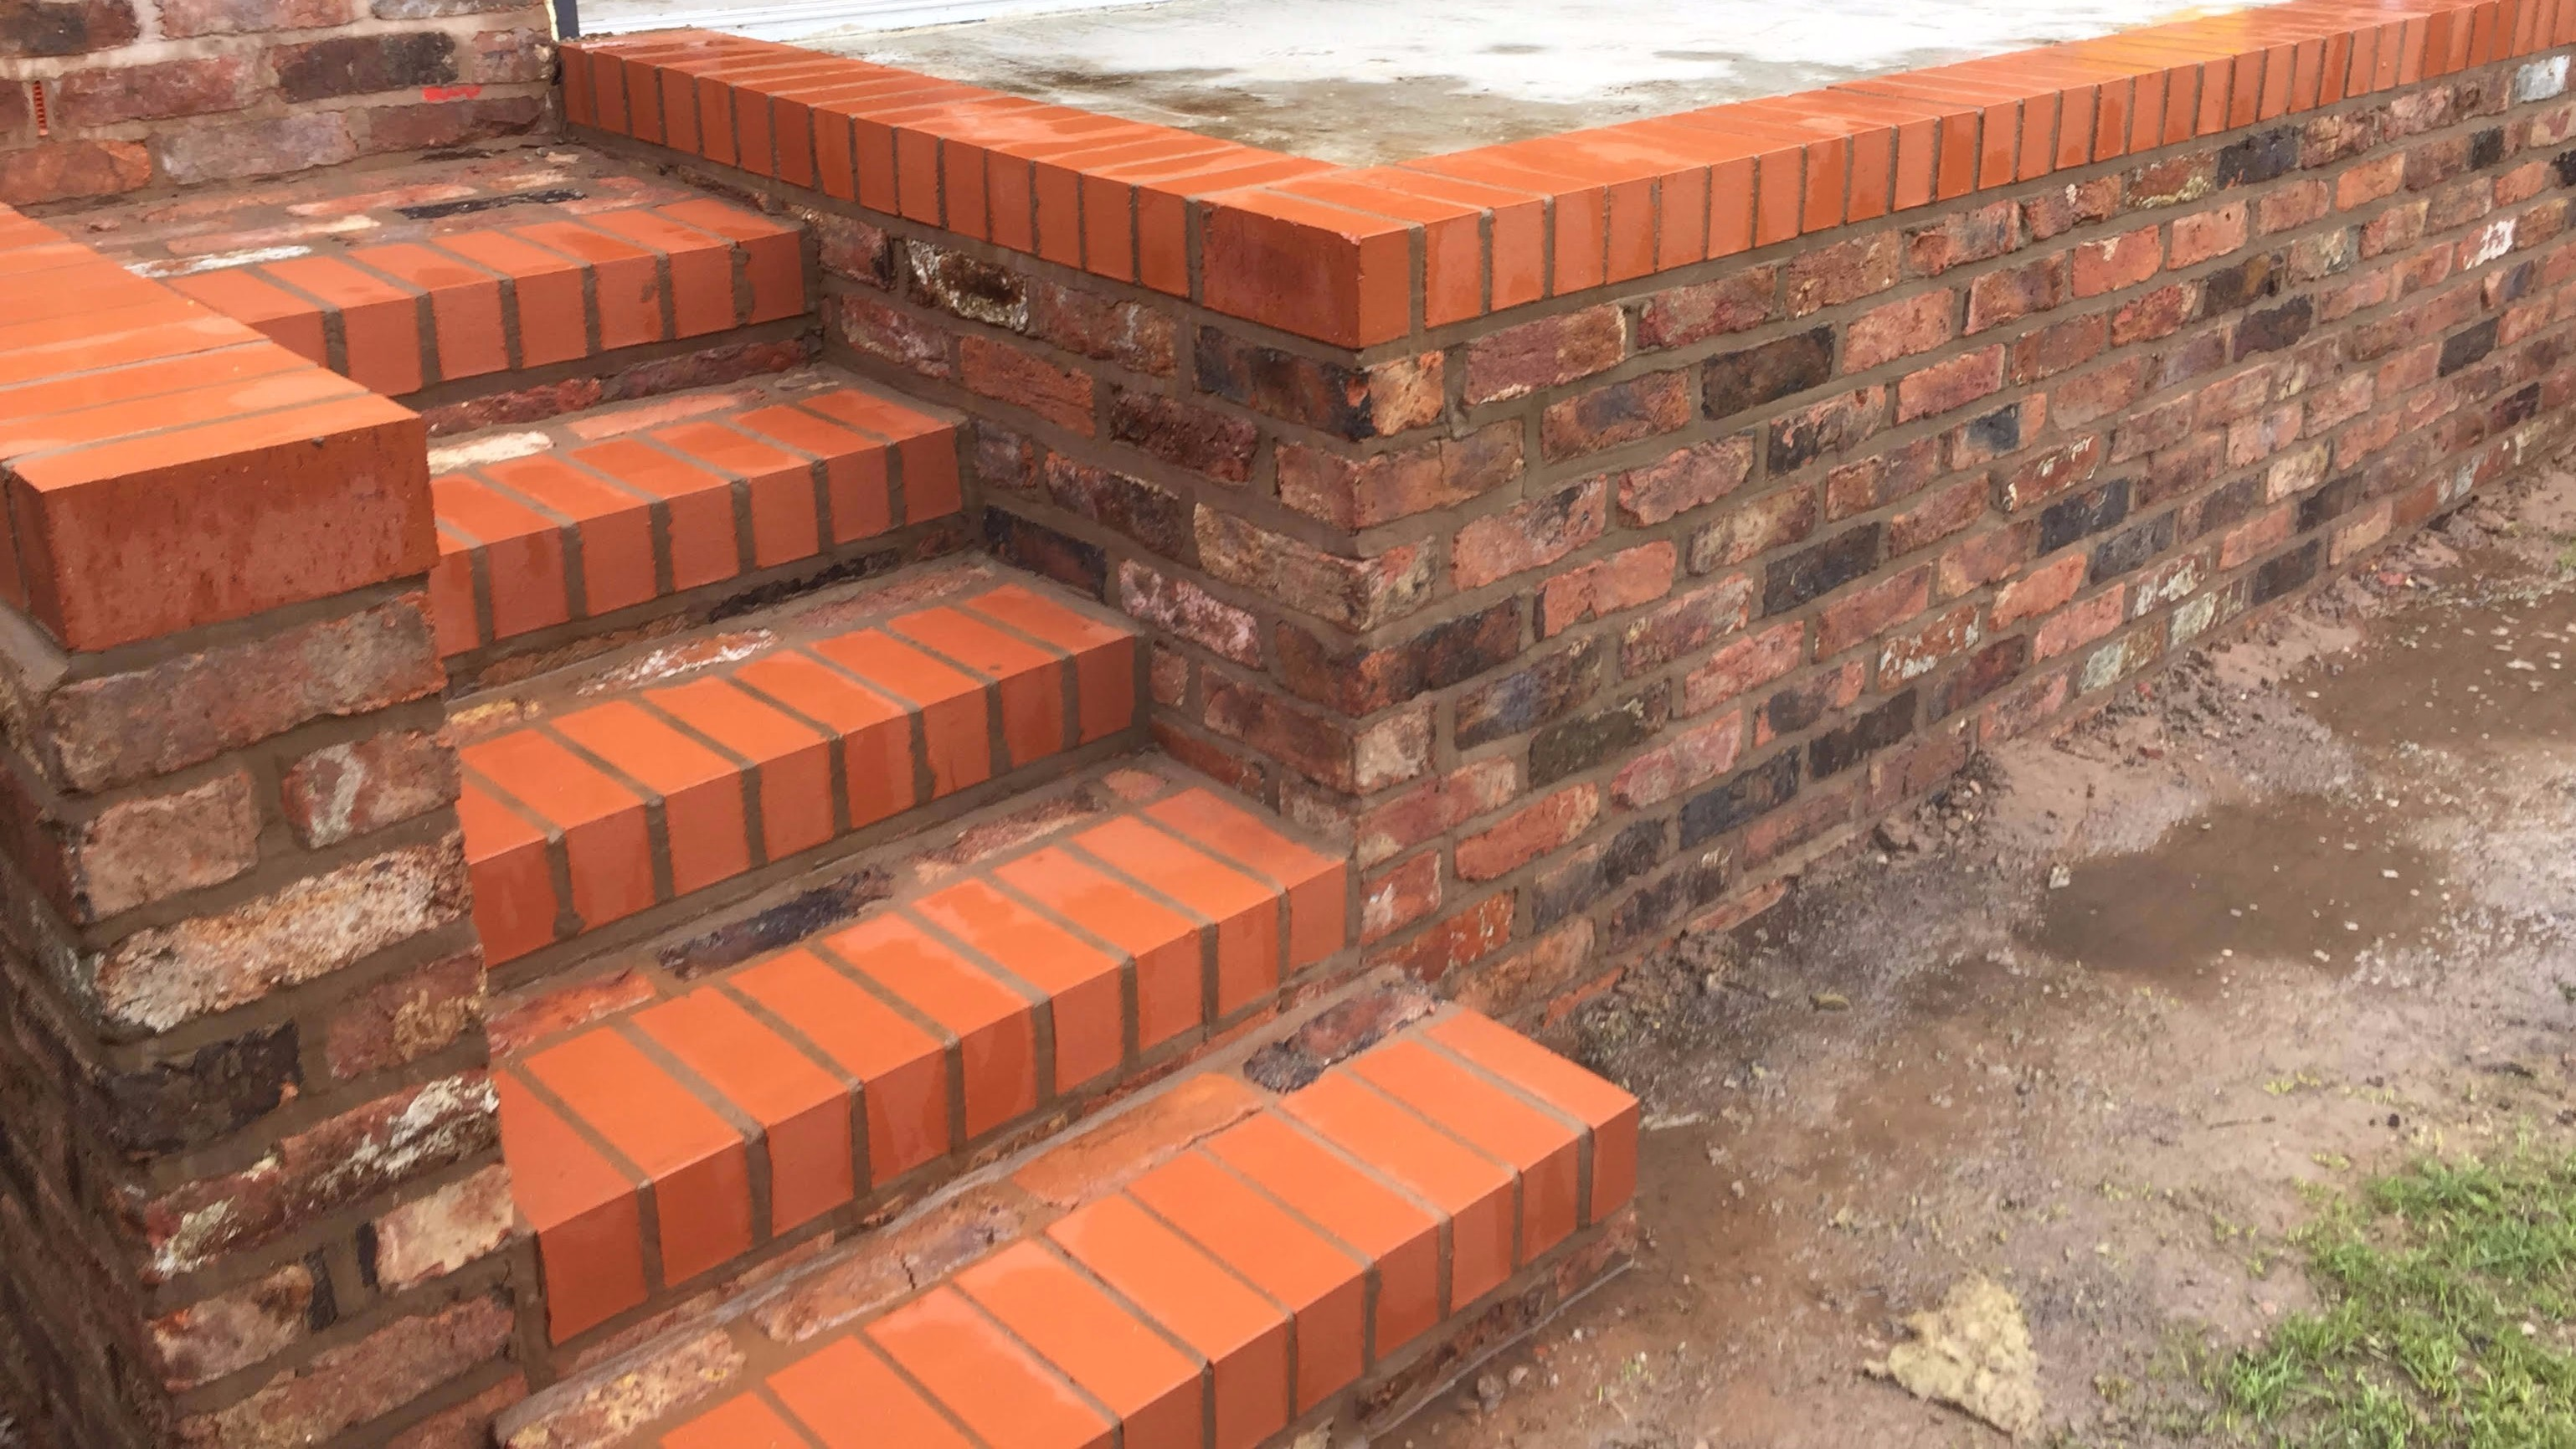 A well-established bricklaying company